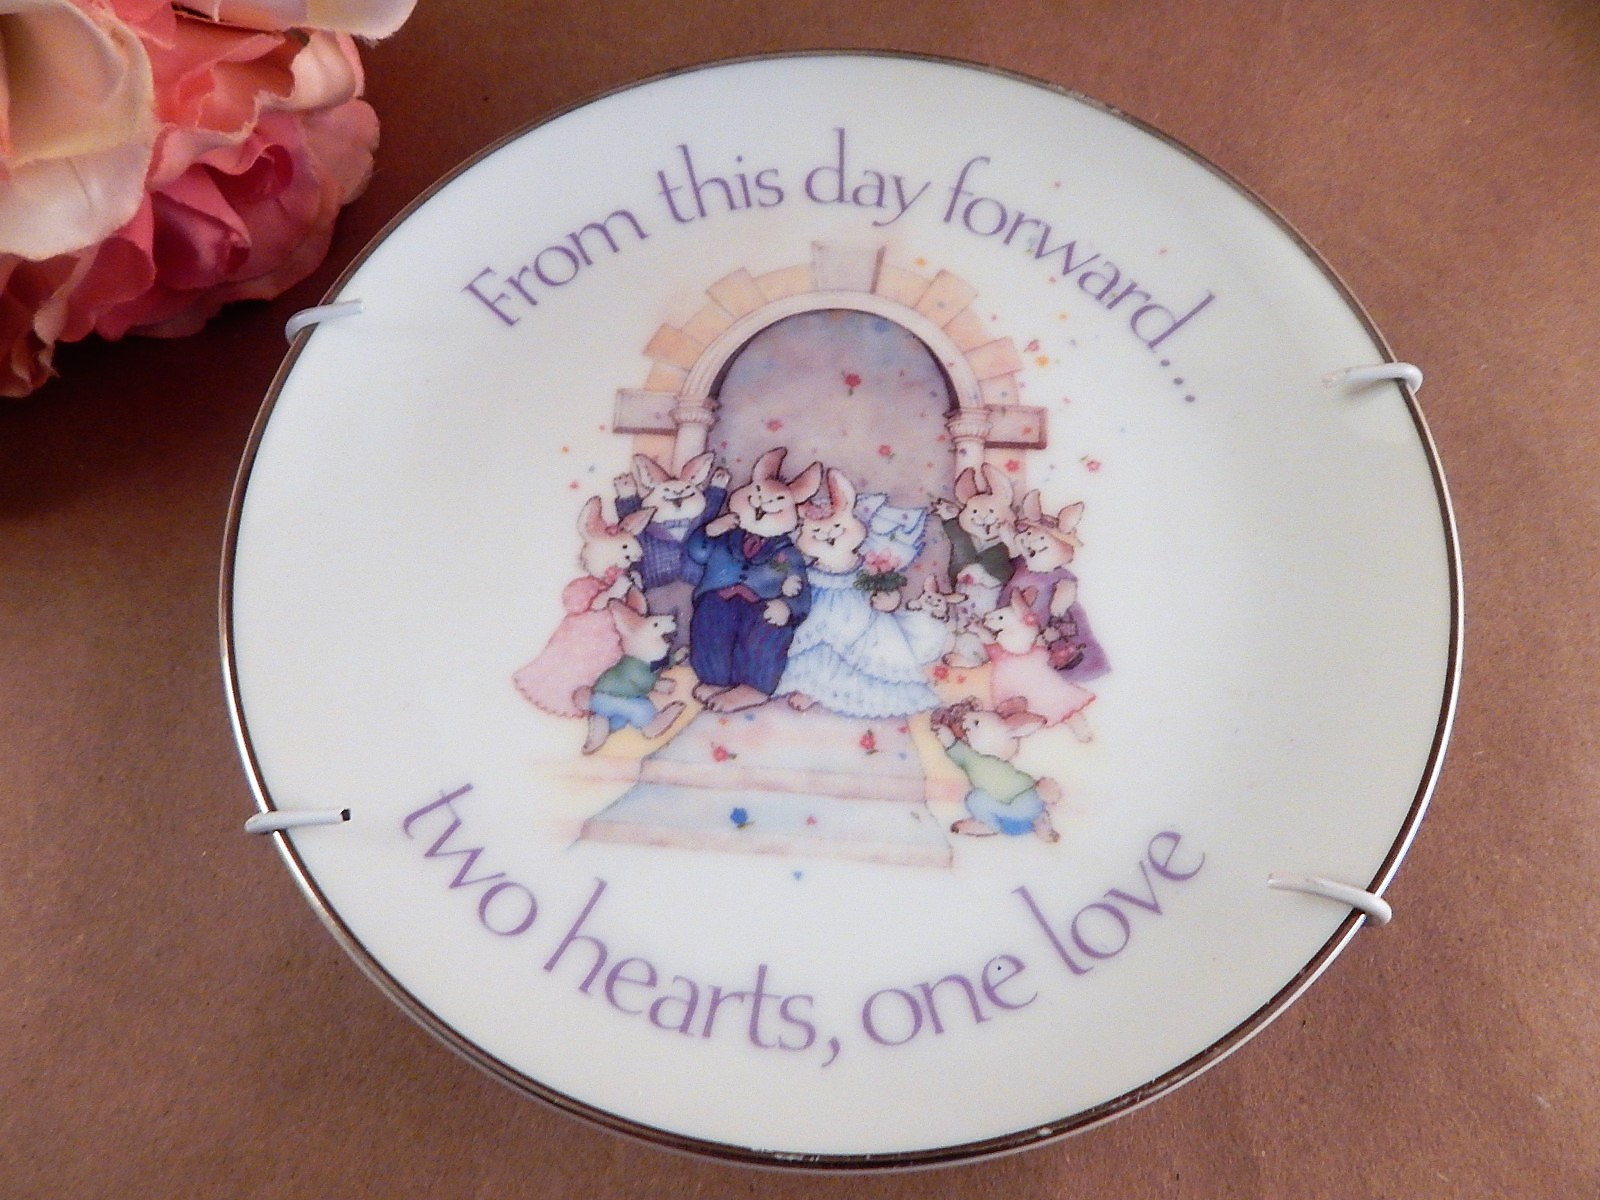 Wedding plate american greetings porcelain from this day forward two wedding plate american greetings porcelain from this day forward two hearts one love vintage 1986 collectible m4hsunfo